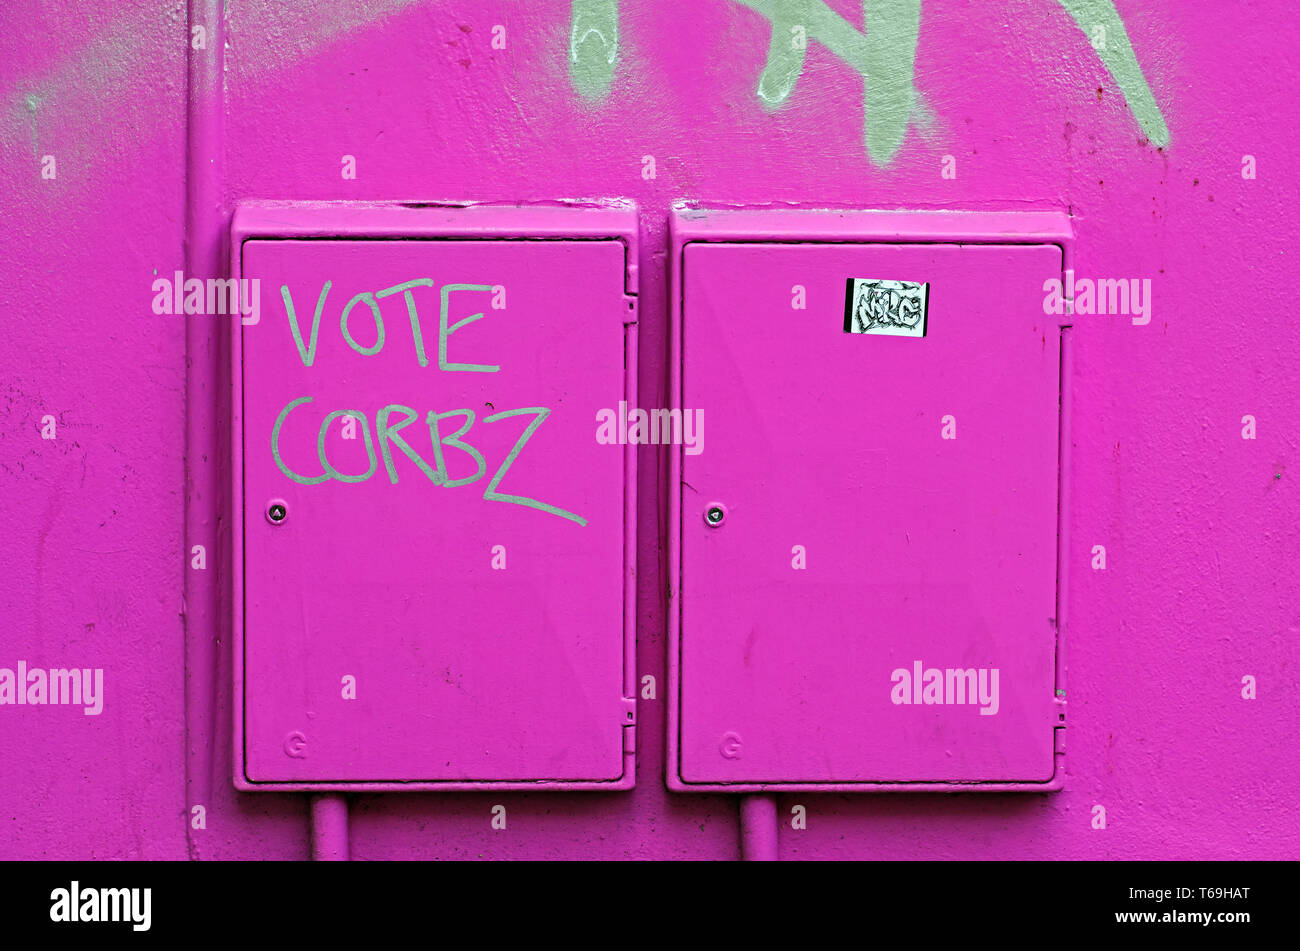 Graffiti in Stokes Croft, Bristol, UK encouraging voters to back the Labour Party in the general election which was held on June 8, 2017. - Stock Image